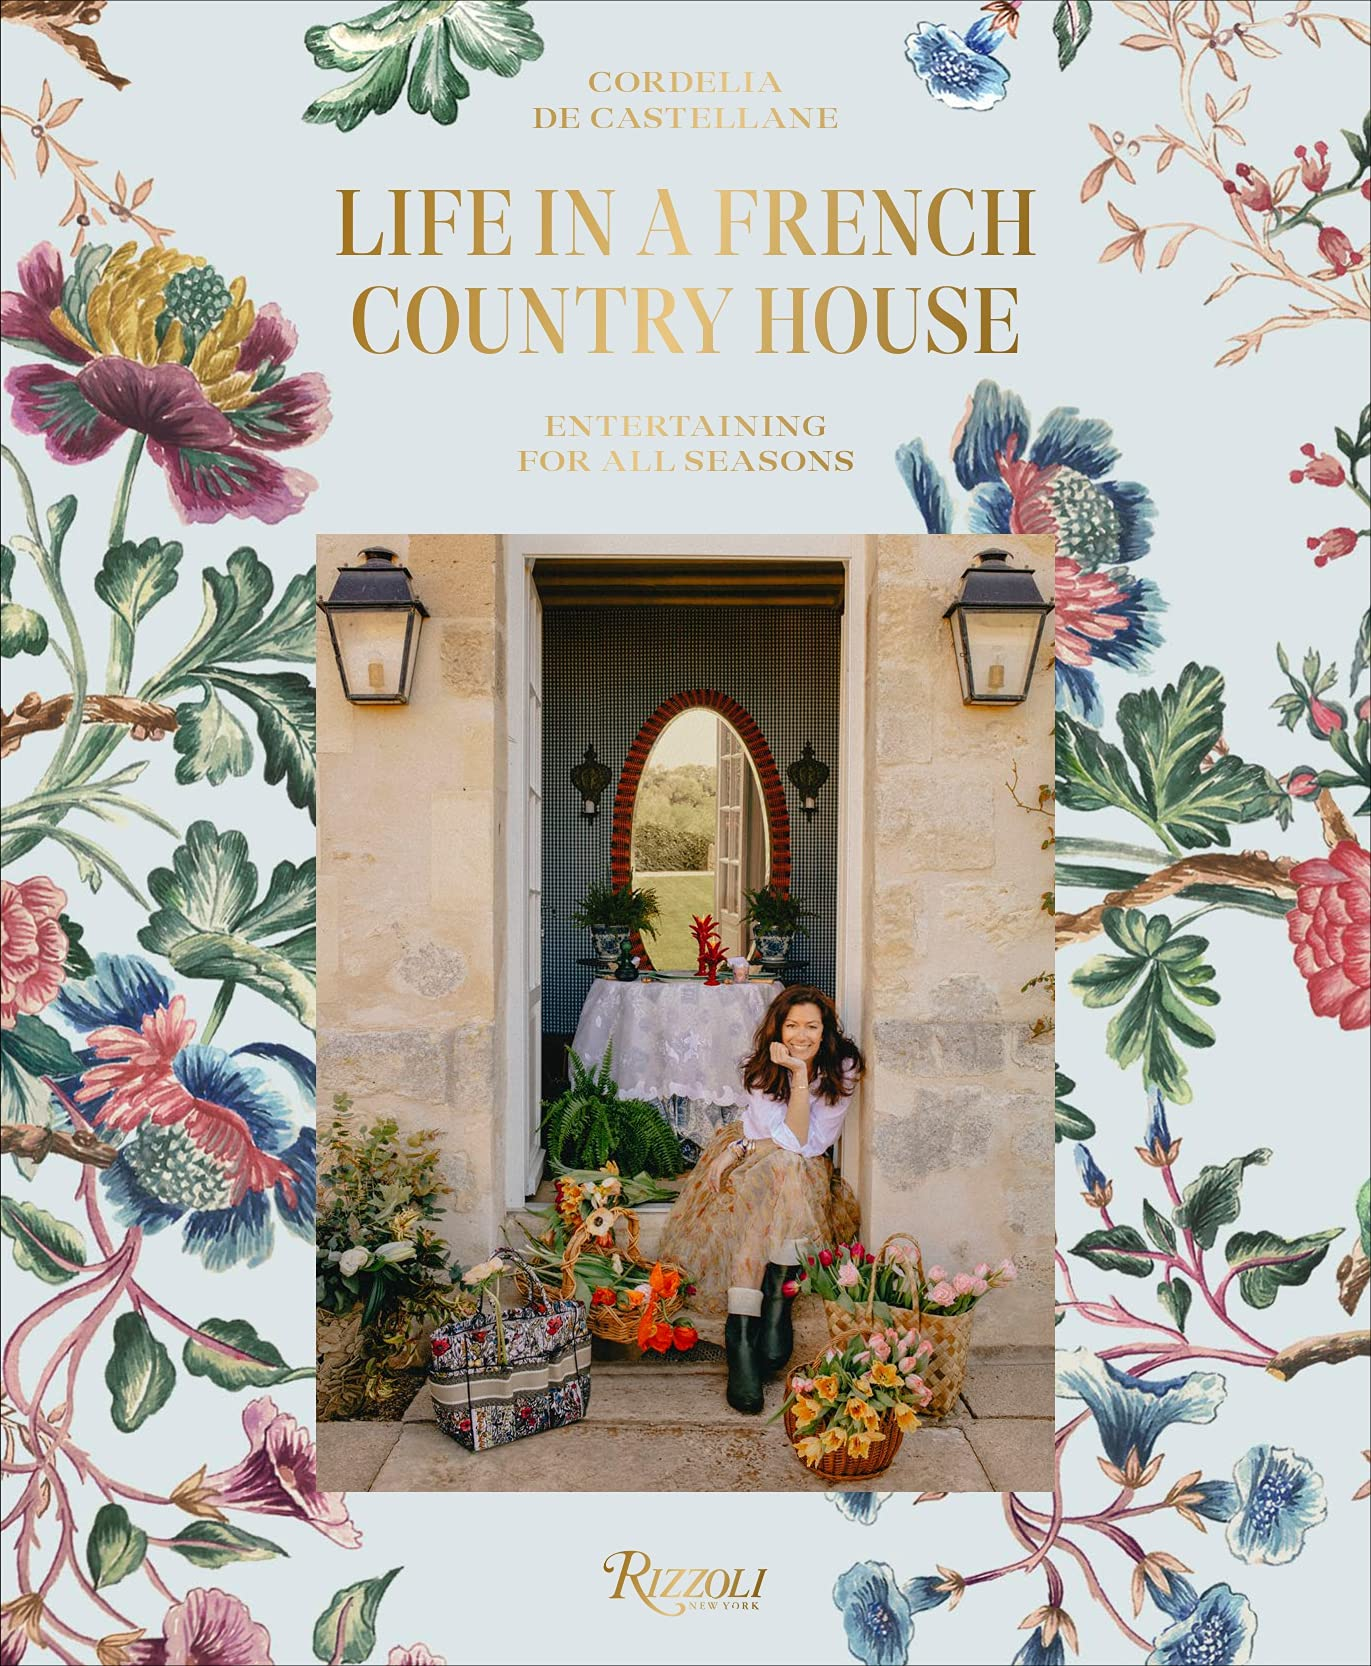 life in a french country house book